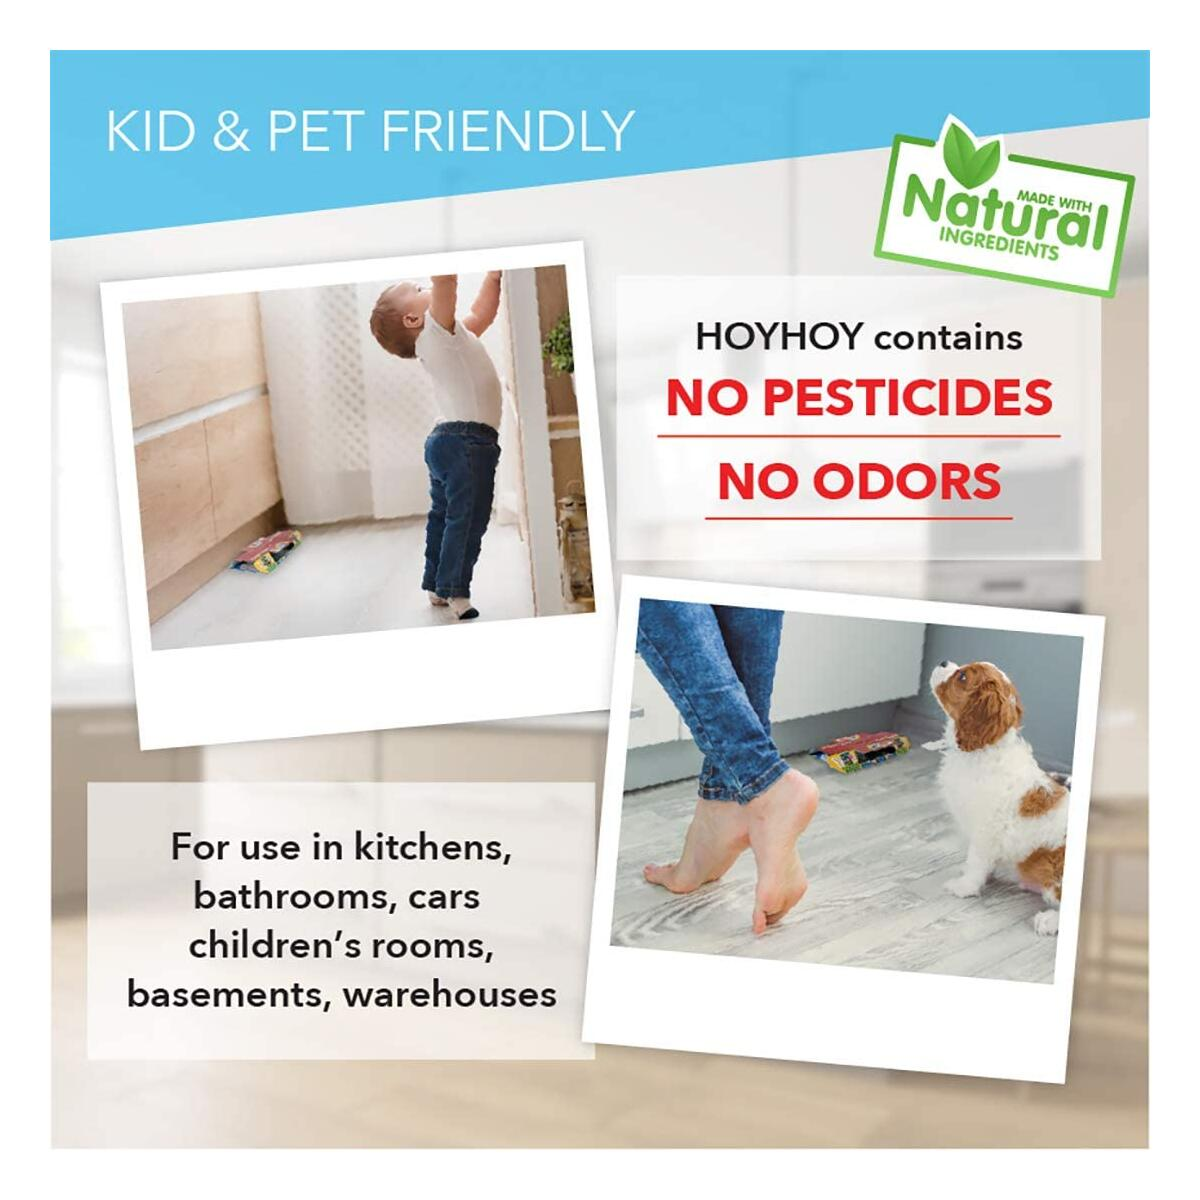 HOY HOY Cockroach Trap Roach Glue Sticky Traps - 5 Count Pesticide-Free Indoor New Version